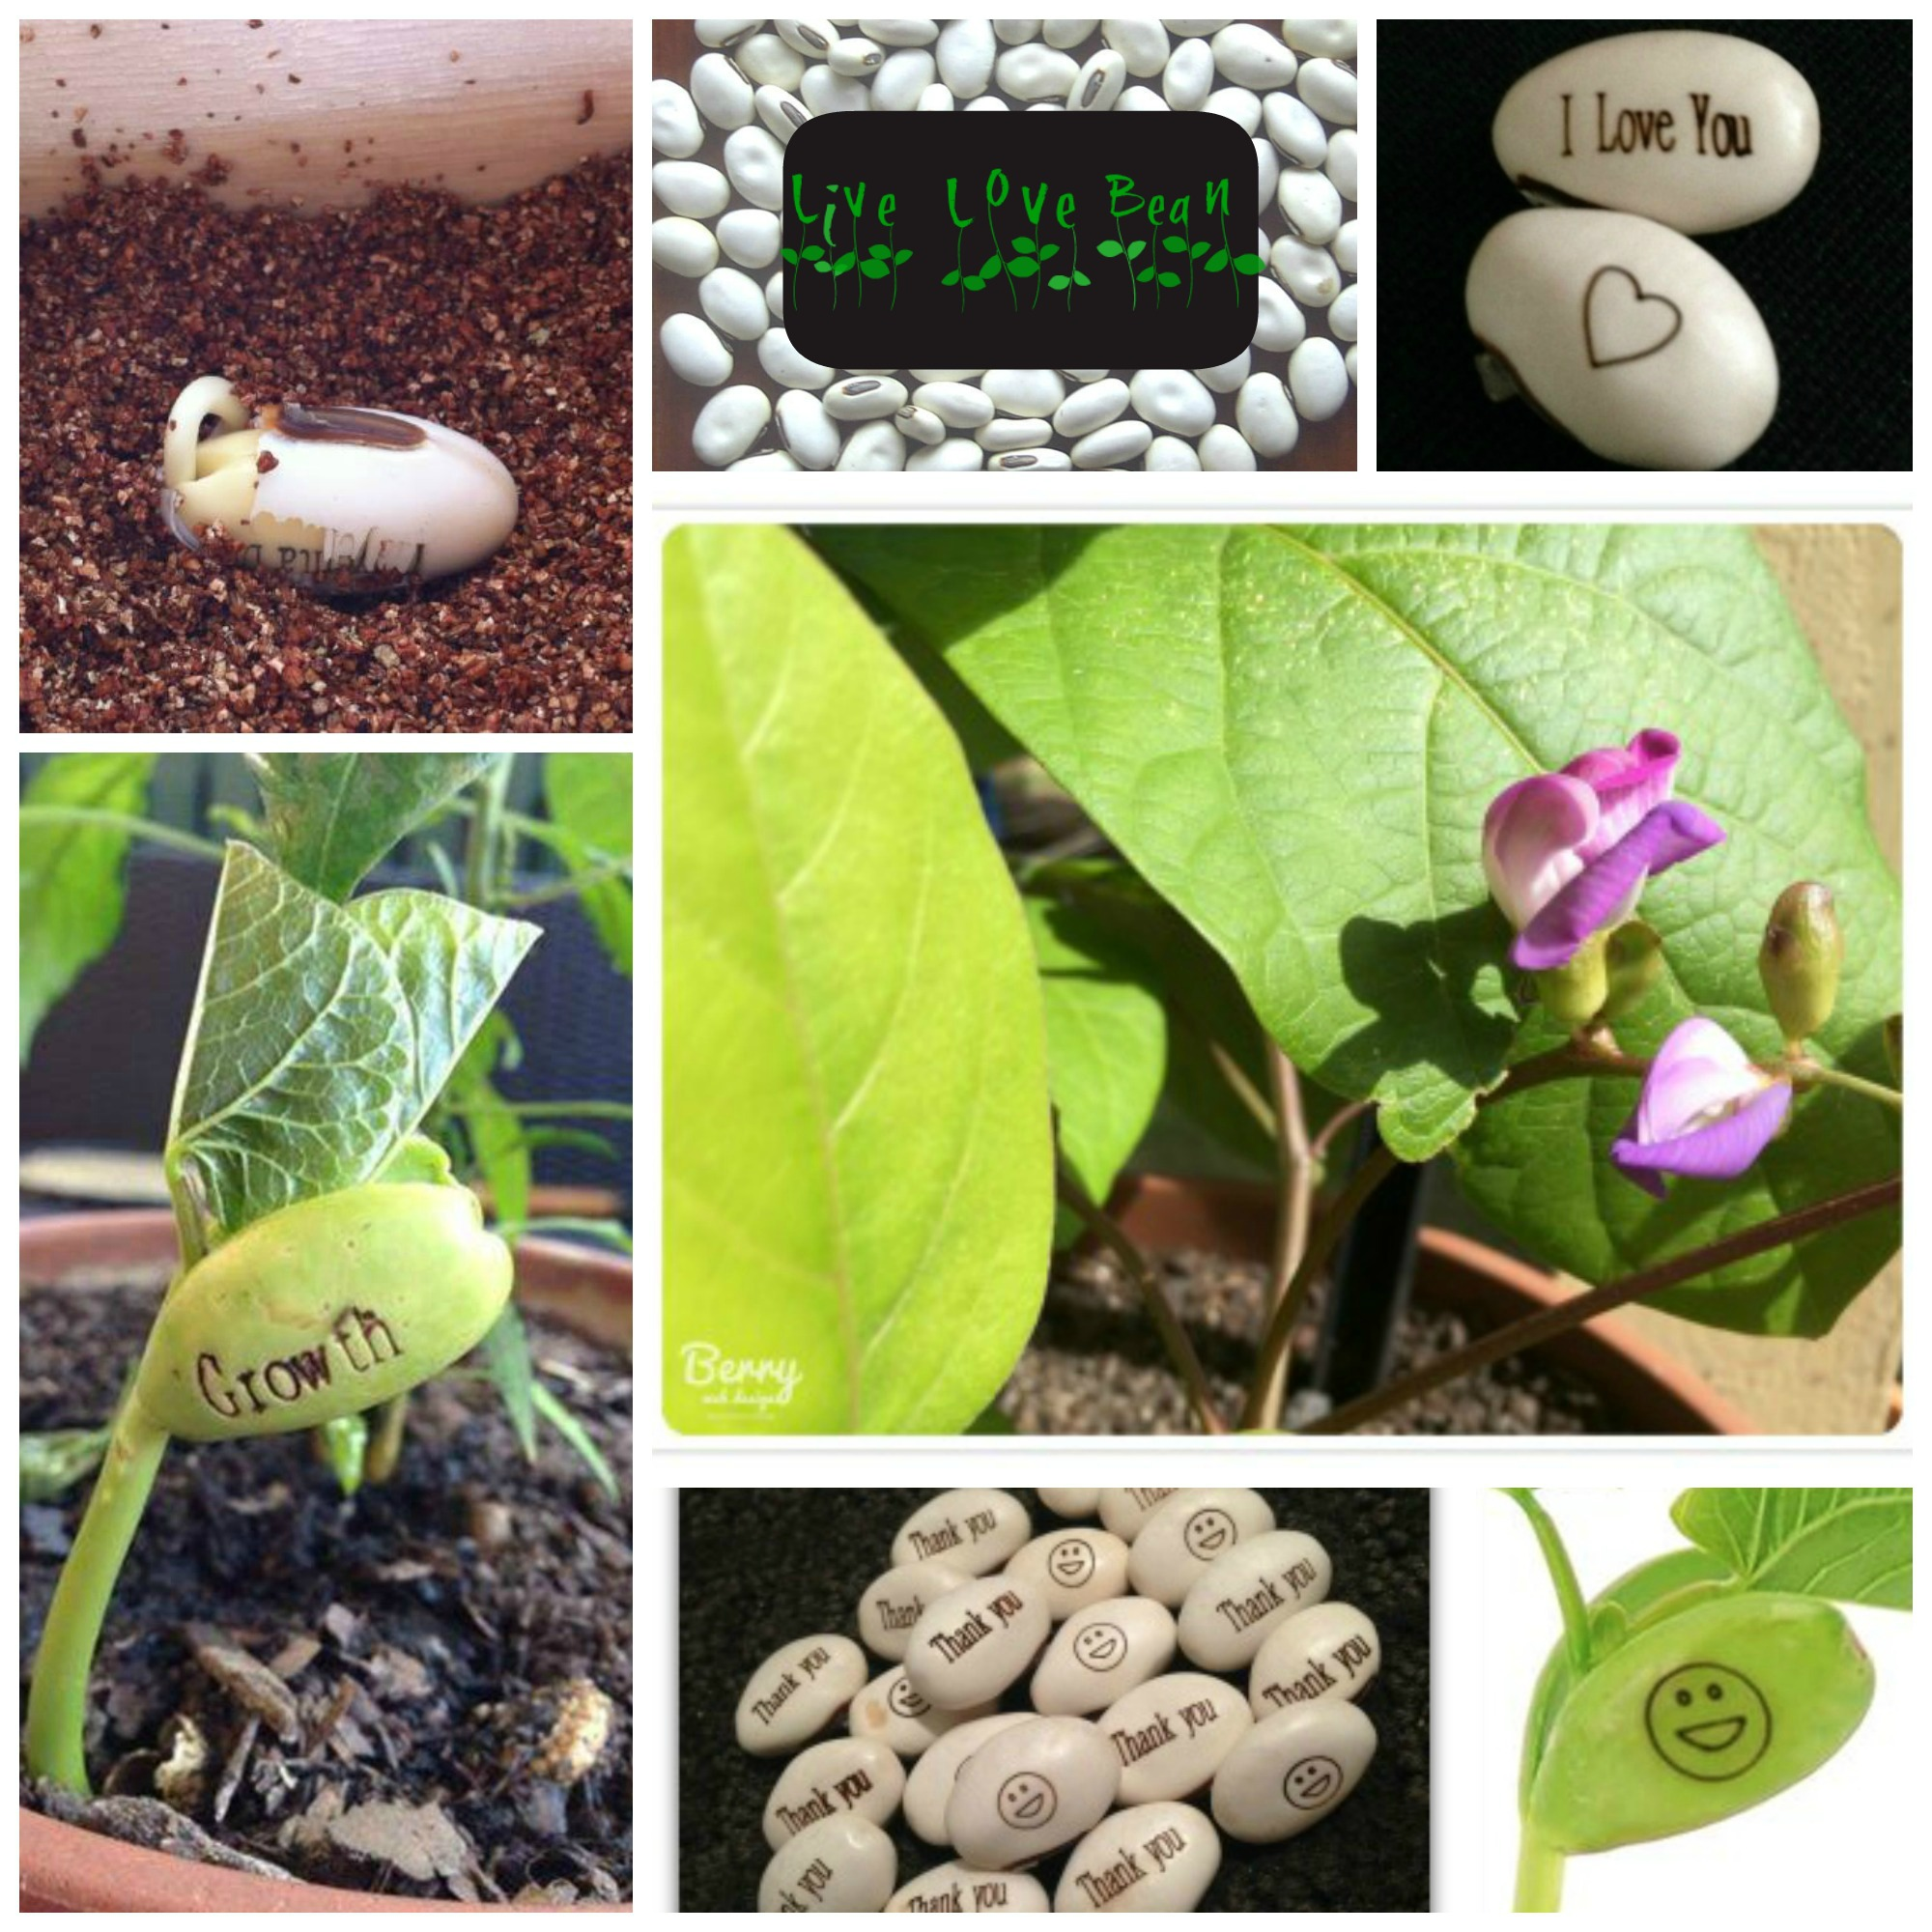 plants that grow with words on them